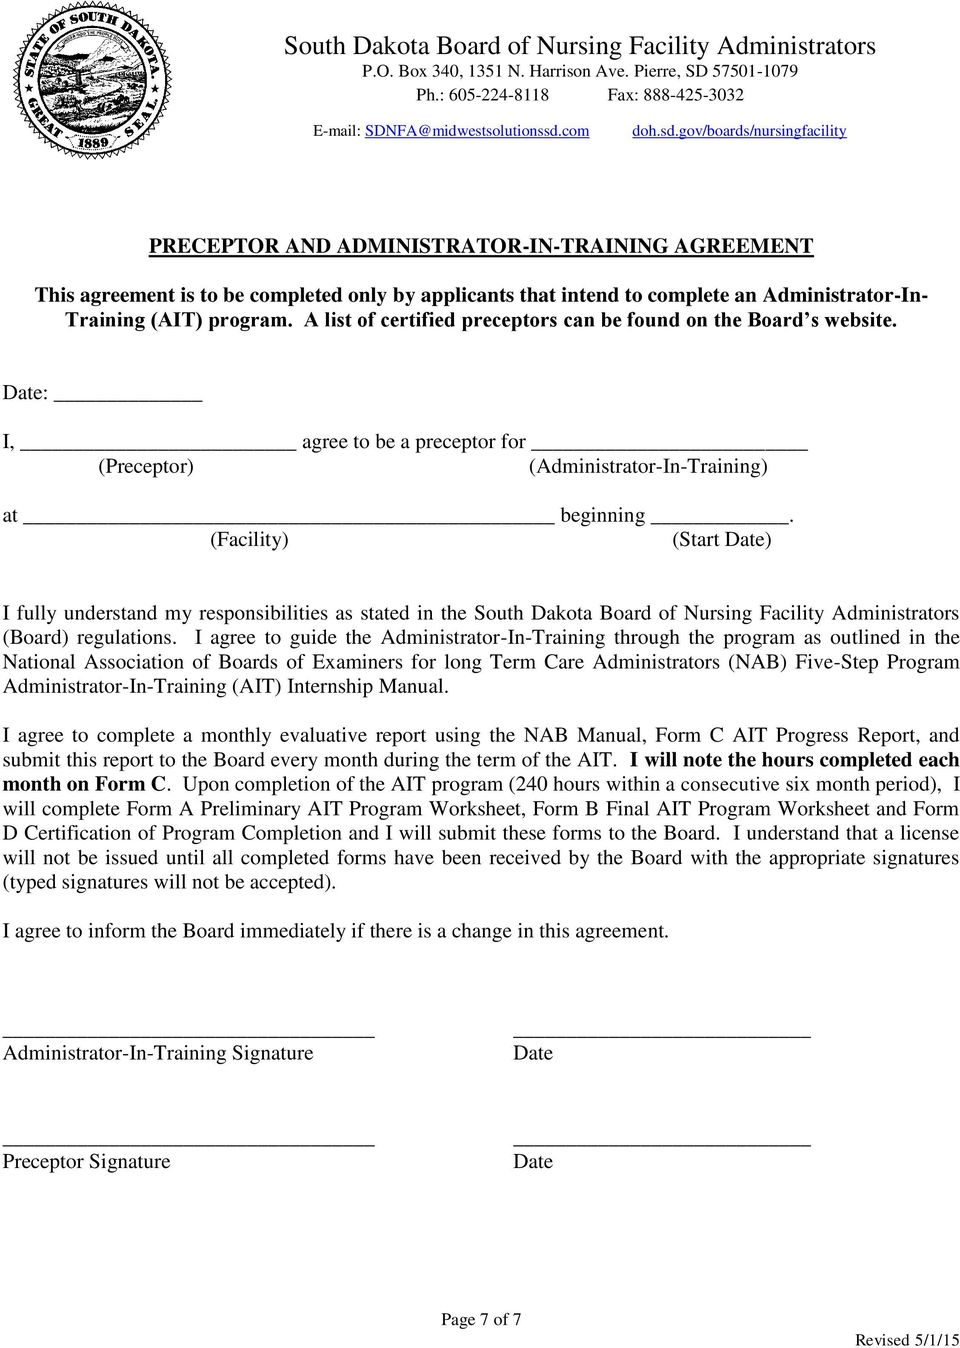 gov/boards/nursingfacility PRECEPTOR AND ADMINISTRATOR-IN-TRAINING AGREEMENT This agreement is to be completed only by applicants that intend to complete an Administrator-In- Training (AIT) program.